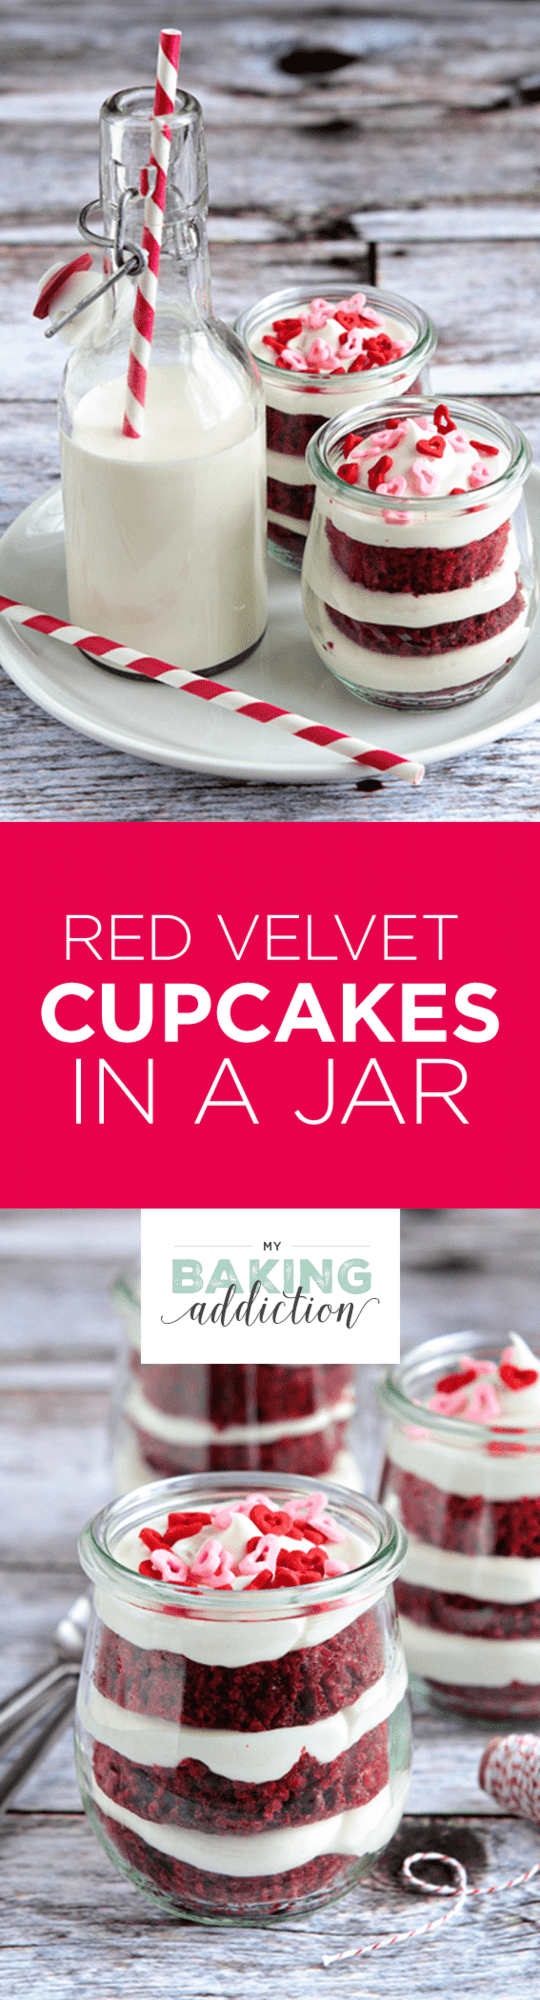 Red Velvet Cupcakes are layered in a jar with sweet cream cheese frosting and festive sprinkles. They're the perfect way to celebrate any occasion!